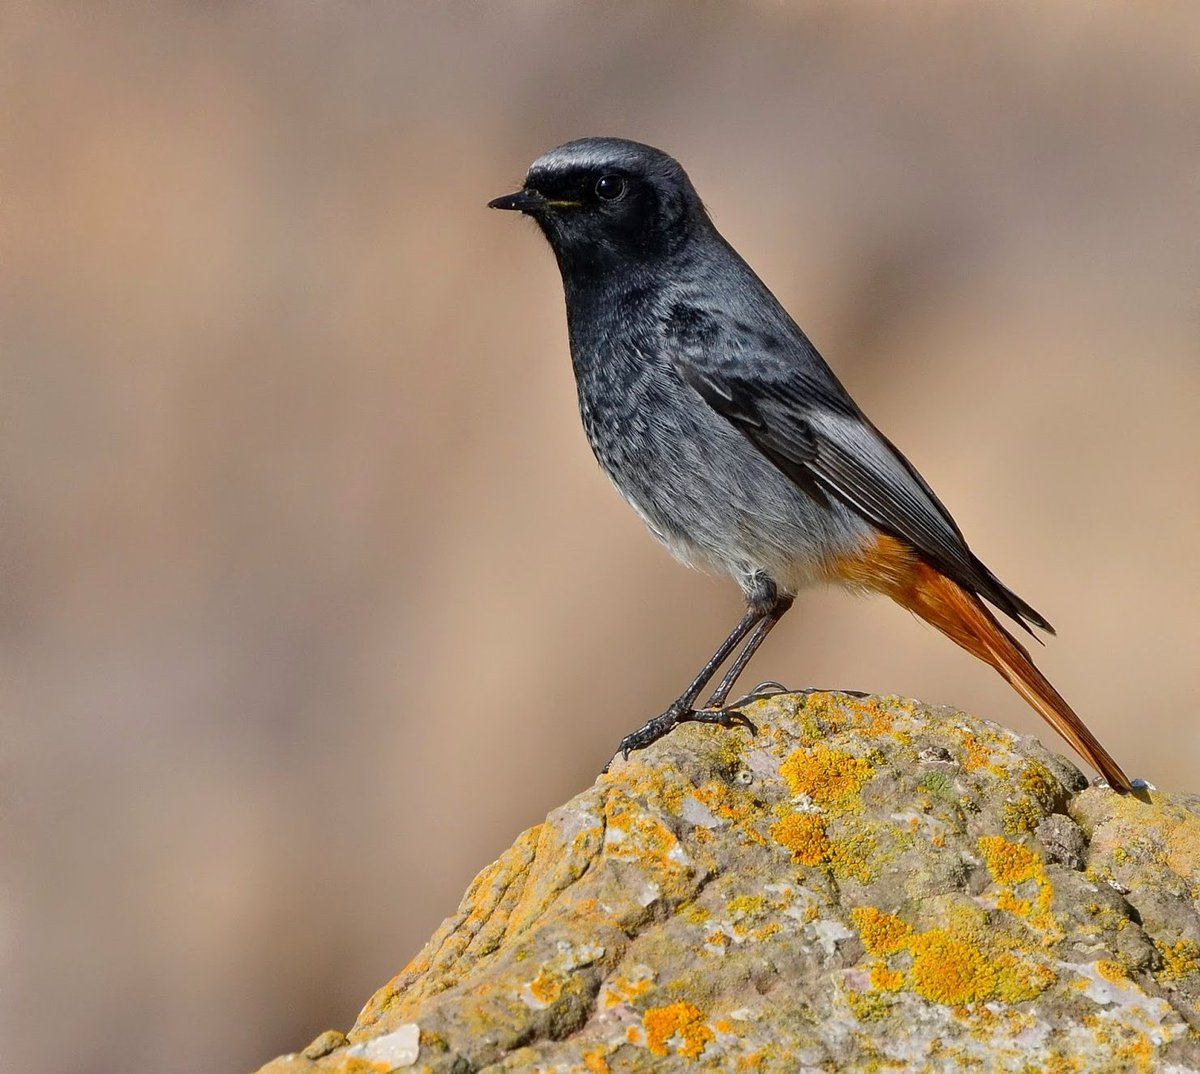 Just how beautiful is a male Black Redstart? 😍  Taken a few years ago at Brean Down in Somerset. 😊 #MoreBirdsLessPolitics 🐦